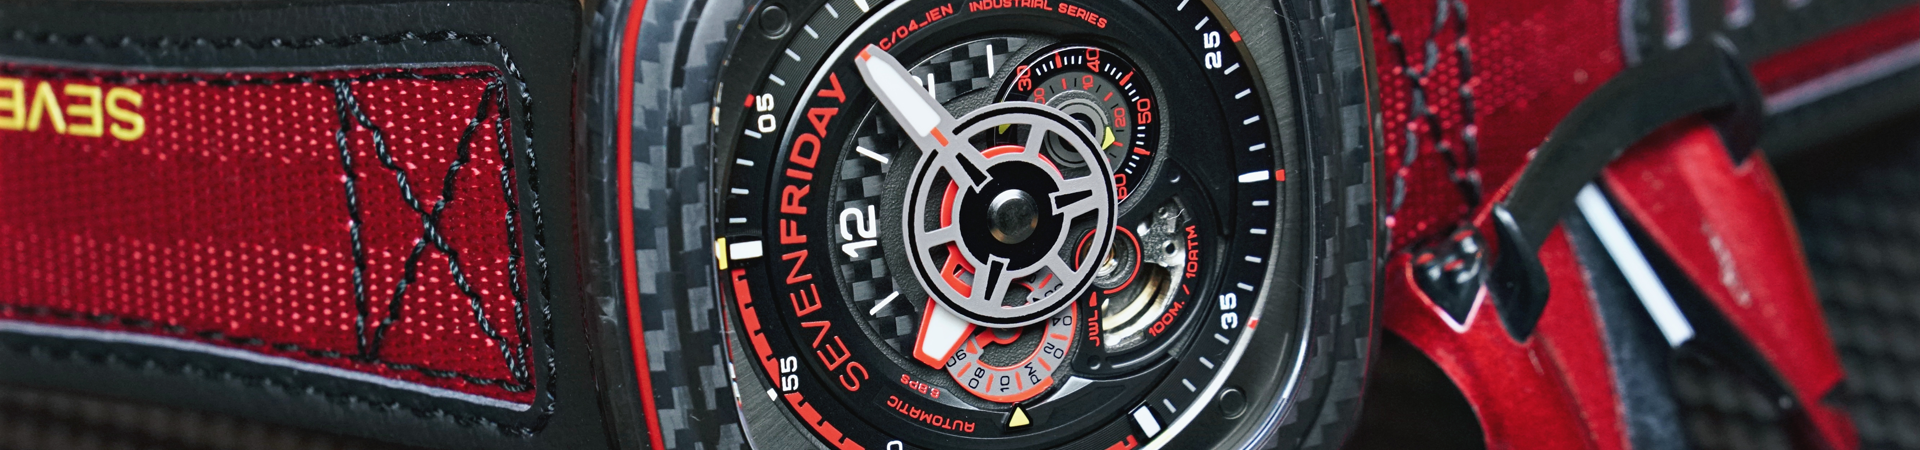 SEVENFRIDAY P3C/04 Red Carbon